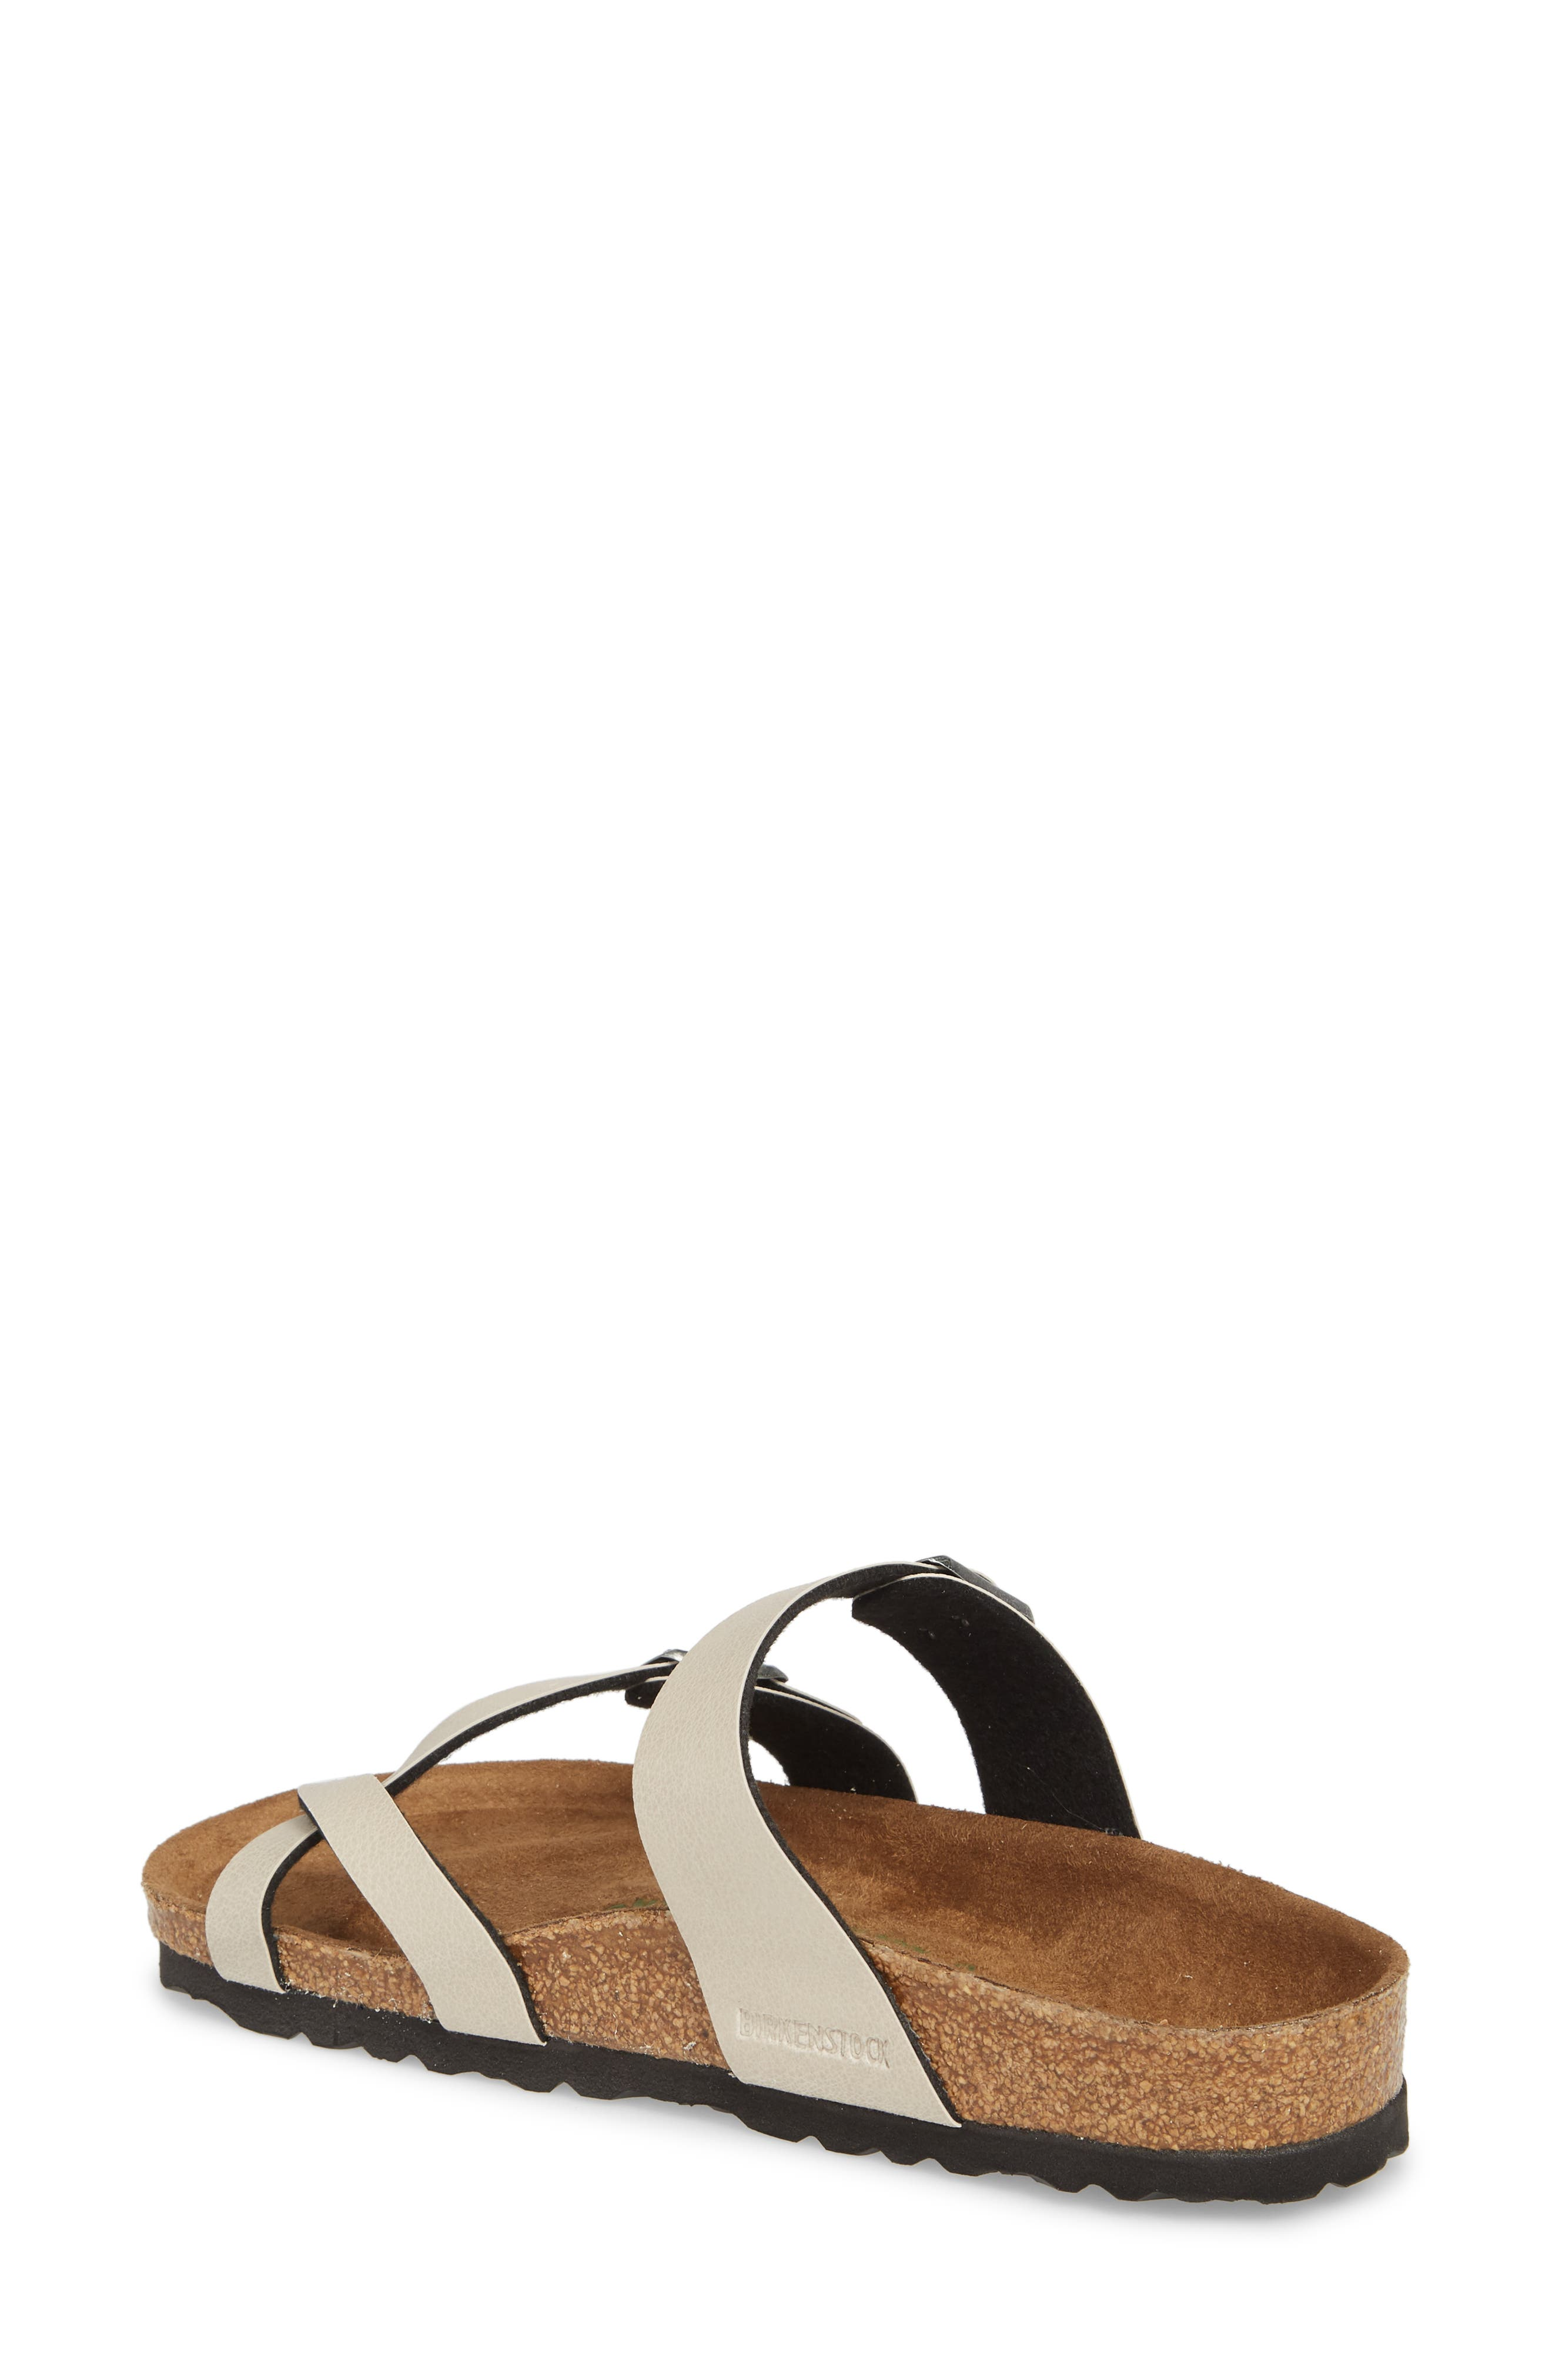 Mayari Birko-Flor<sup>™</sup> Slide Sandal,                             Alternate thumbnail 2, color,                             Pull Up Stone Faux Leather